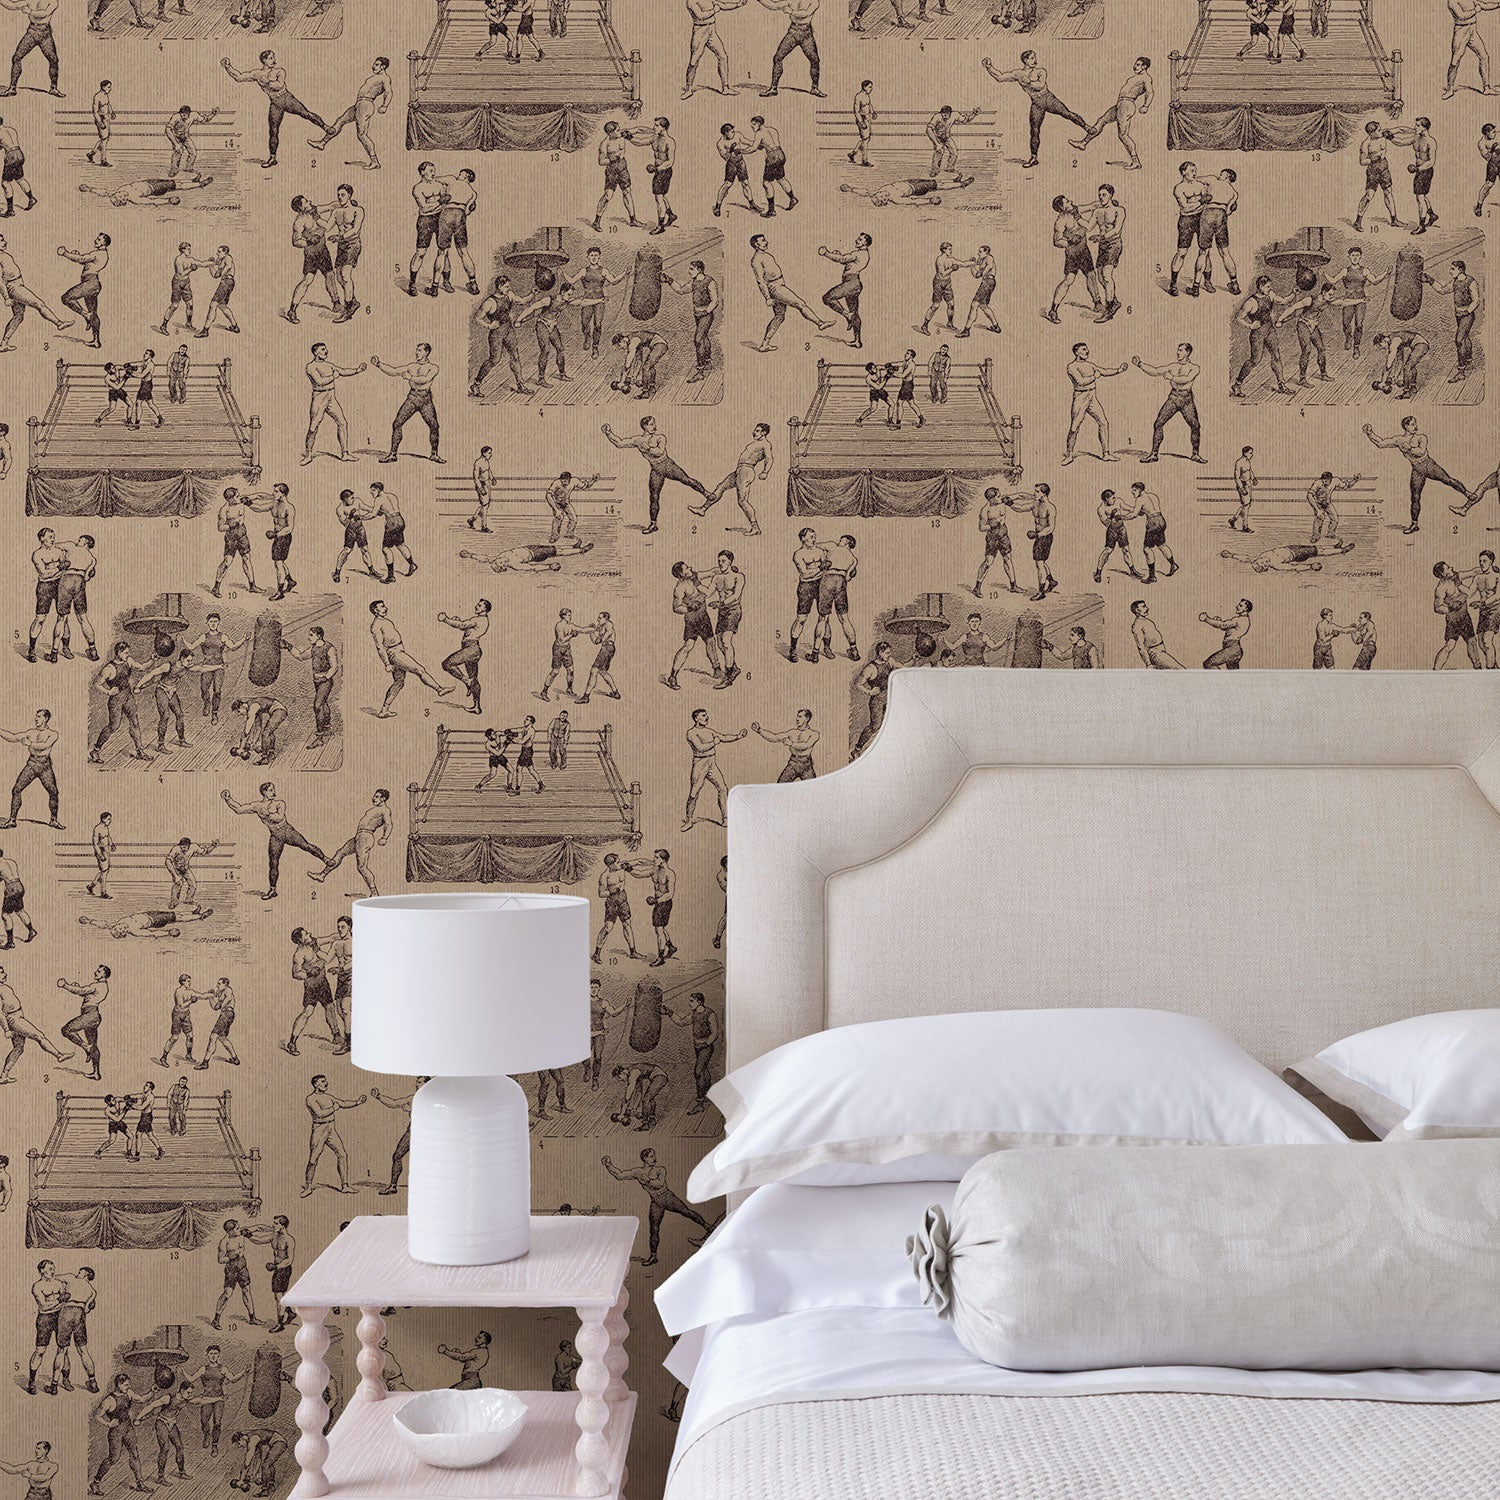 Bedroom featuring a Wallpaper featuring a vintage illustrated boxing scene